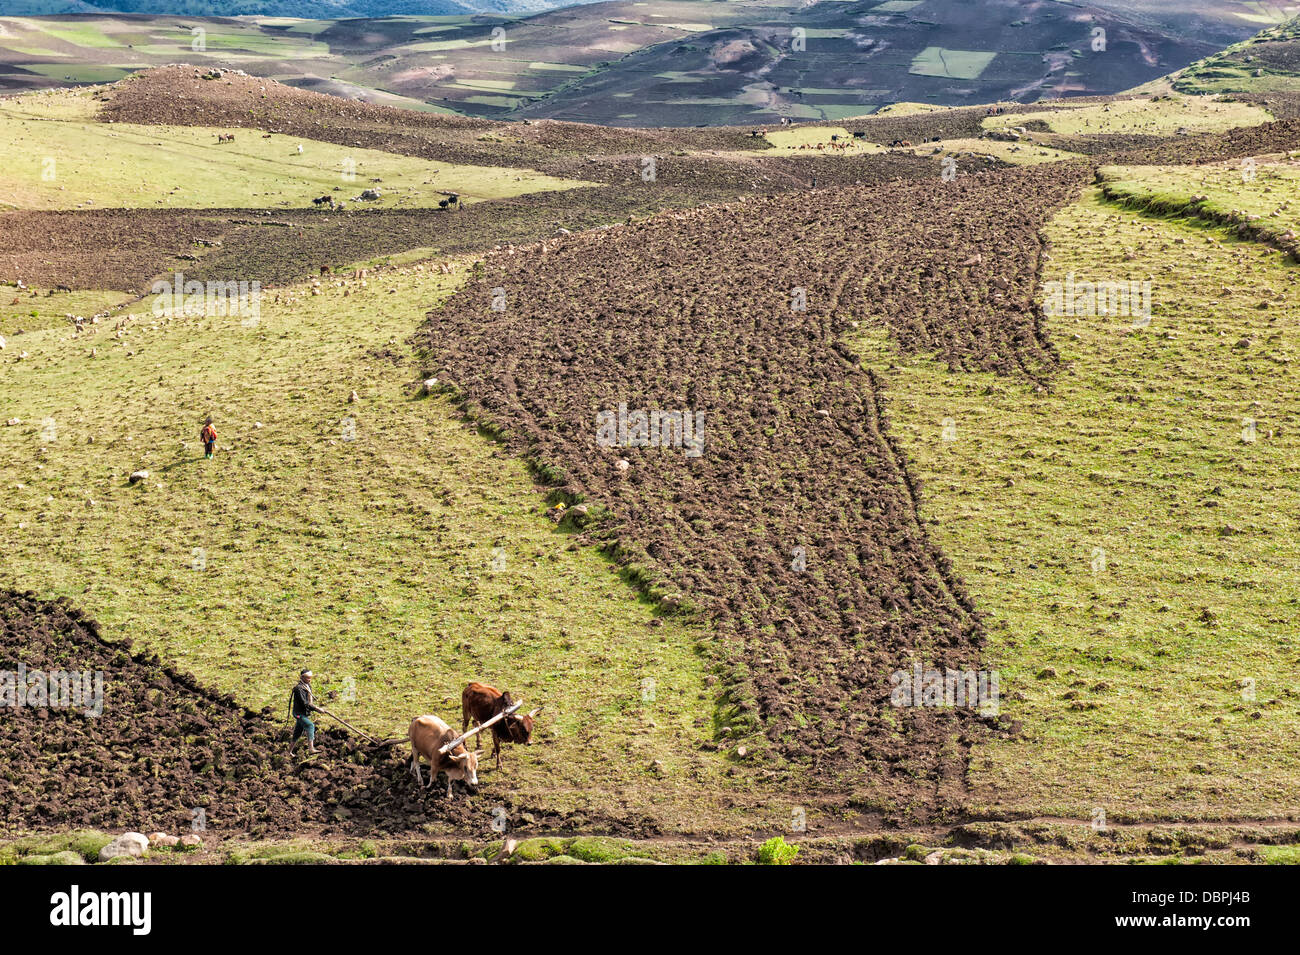 Farmer working his field, Simien Mountains National Park, UNESCO World Heritage Site, Amhara region, Ethiopia, Africa - Stock Image